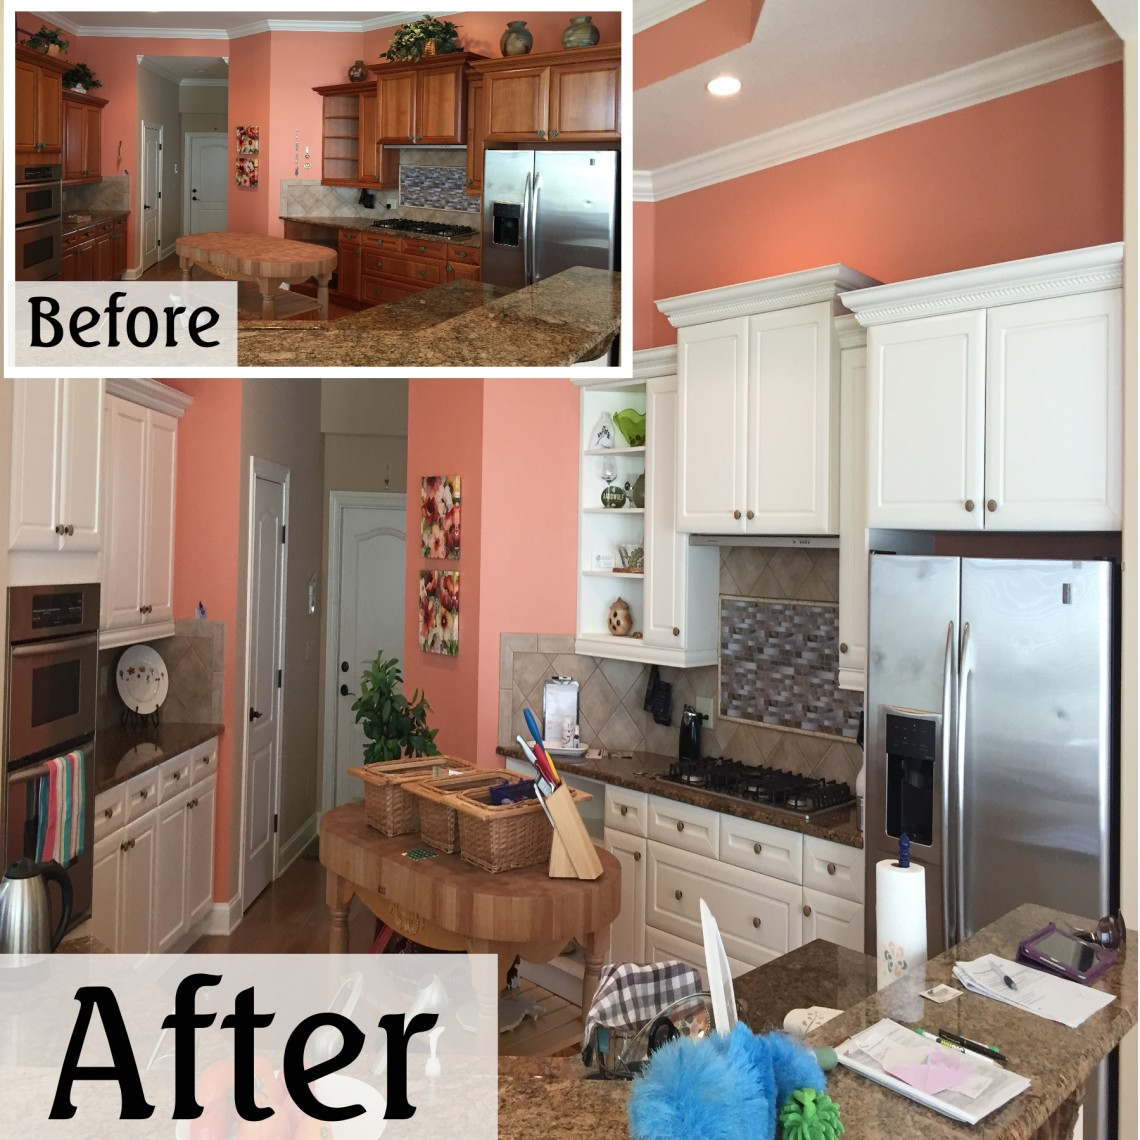 Kitchen Doors To Paint: The Signature Painting